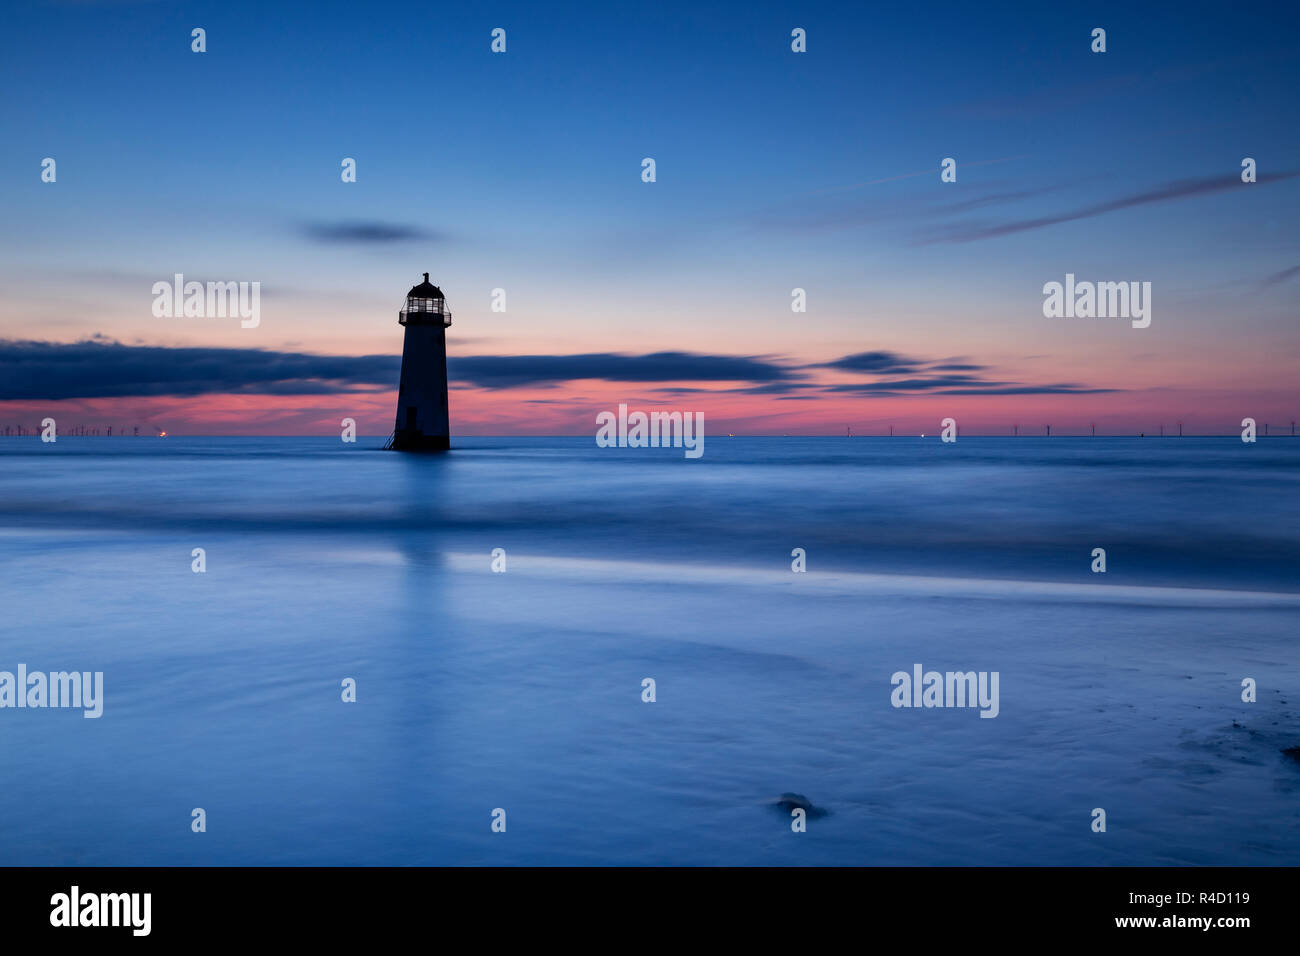 Point of Ayr lighthouse at dusk on Talacre beach, North Wales coast Stock Photo